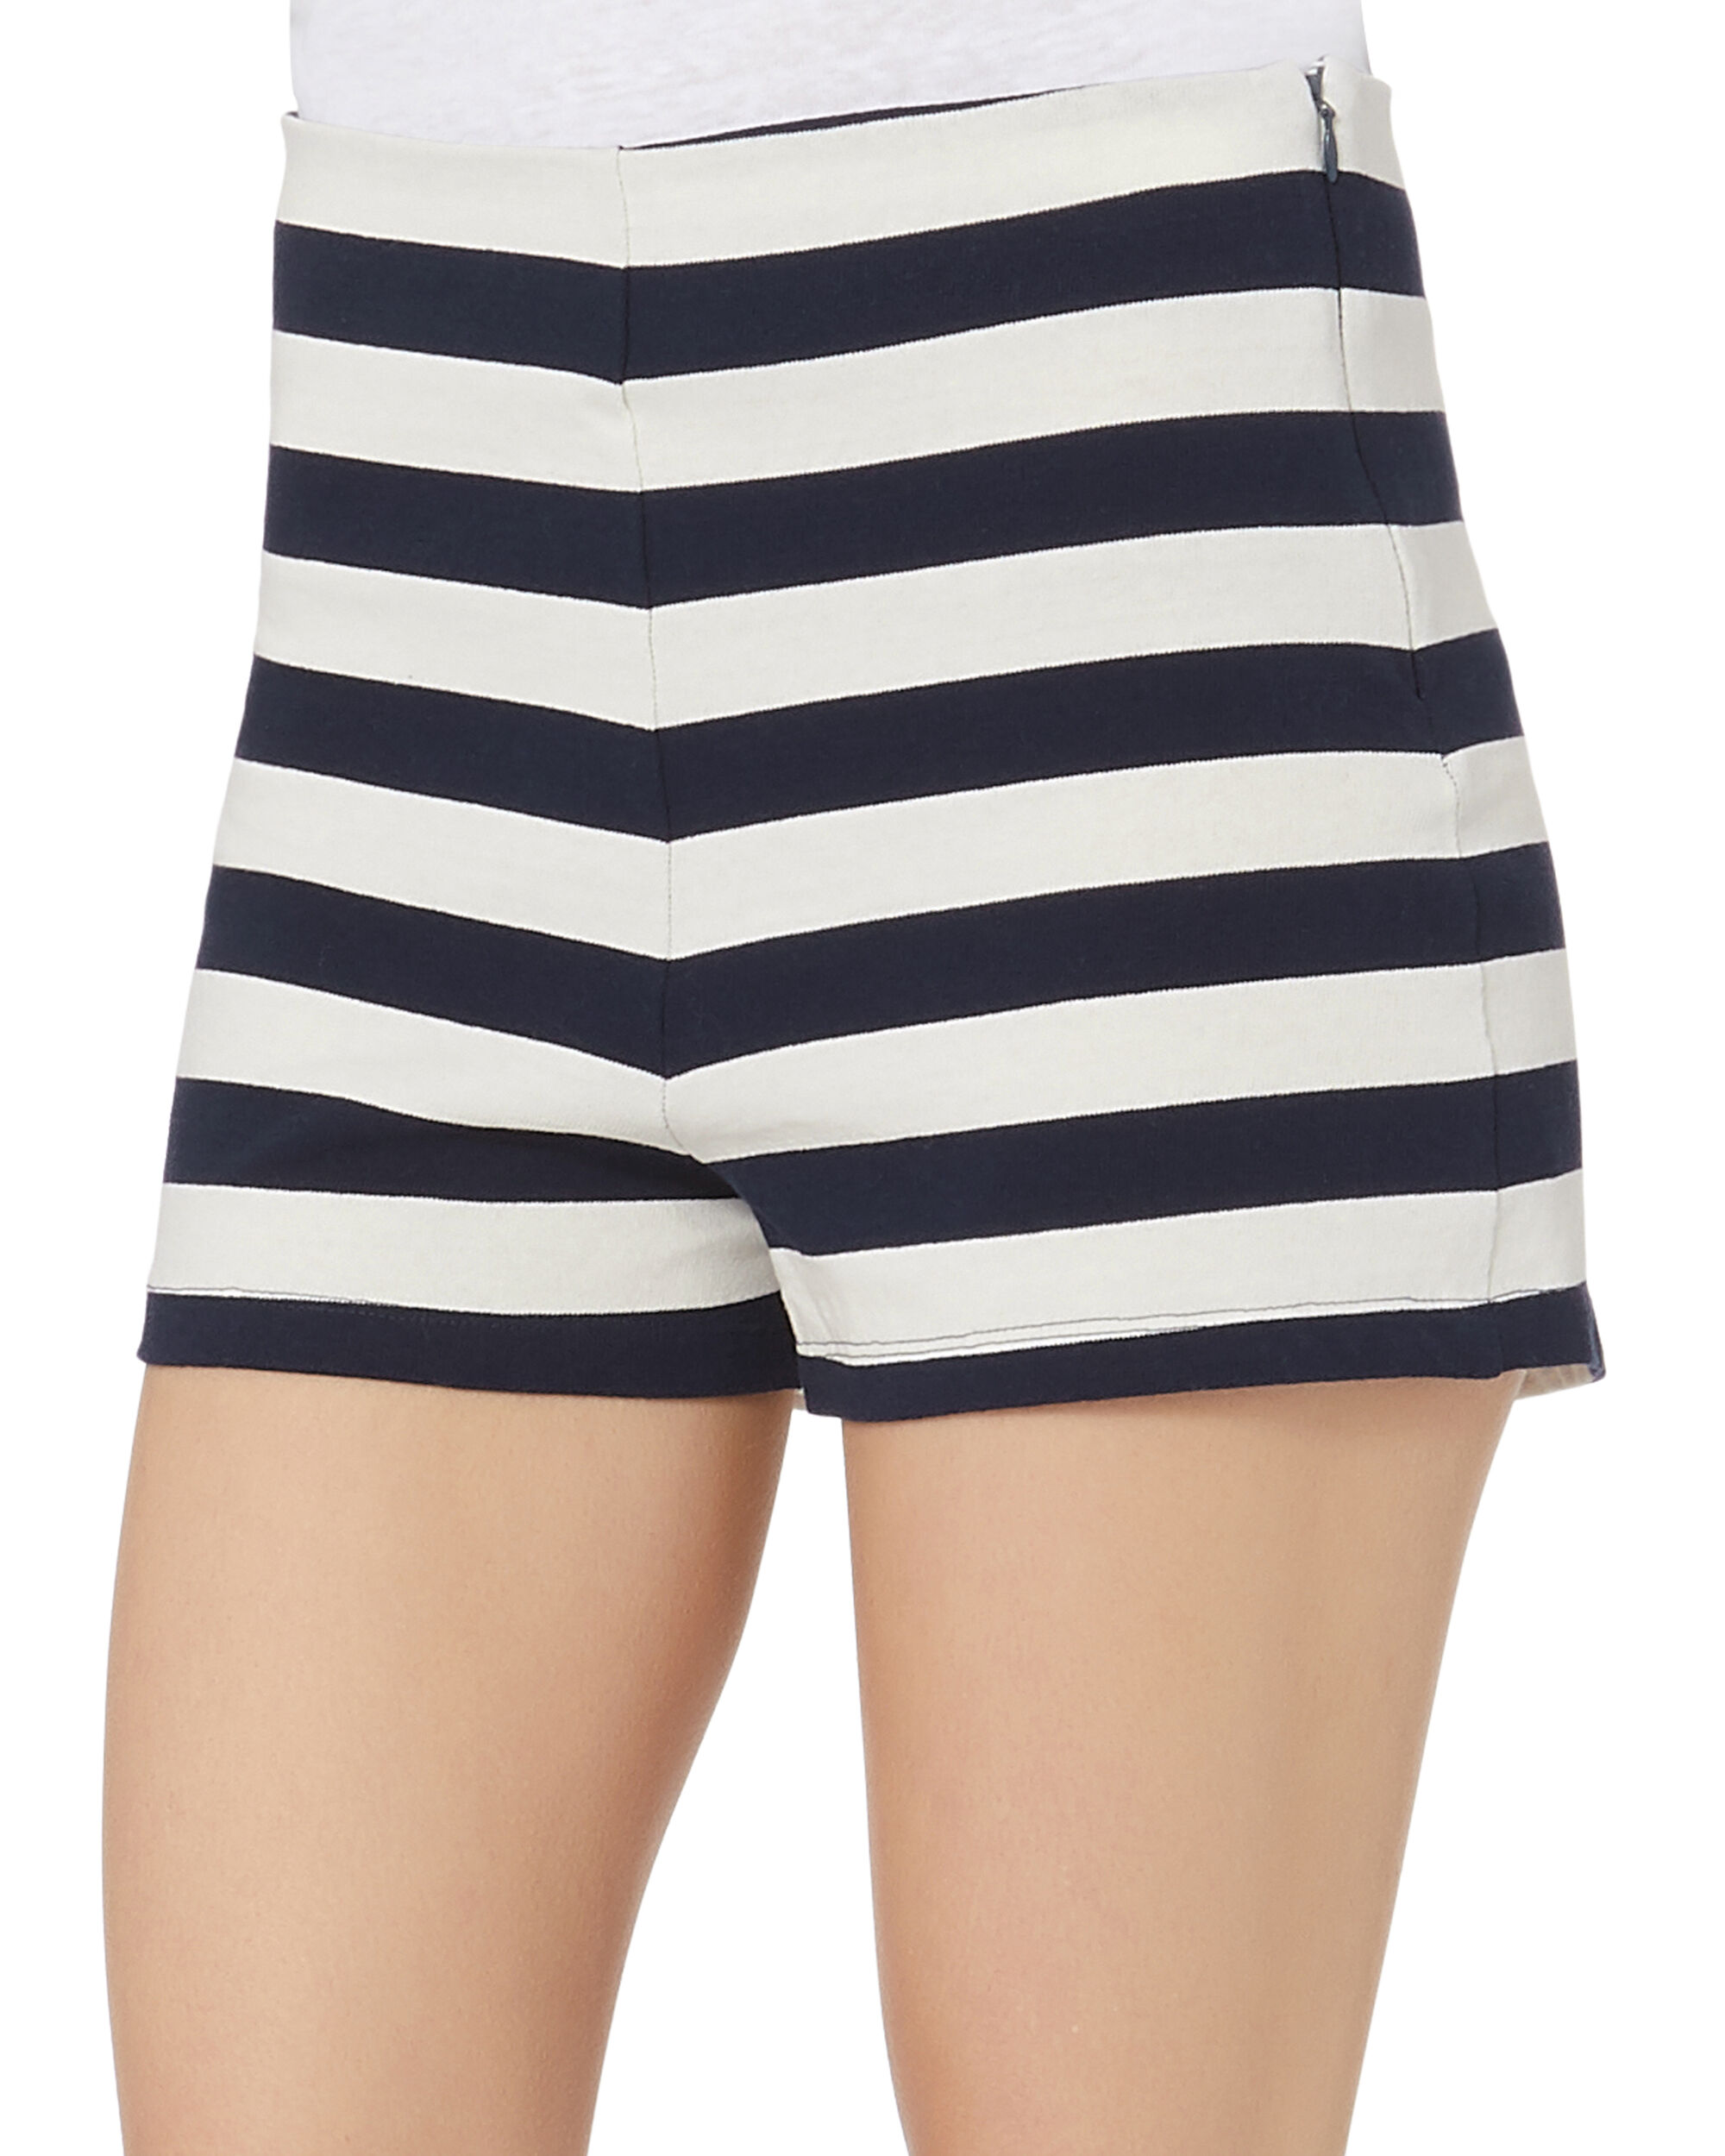 Lucy Striped Shorts, PATTERN, hi-res